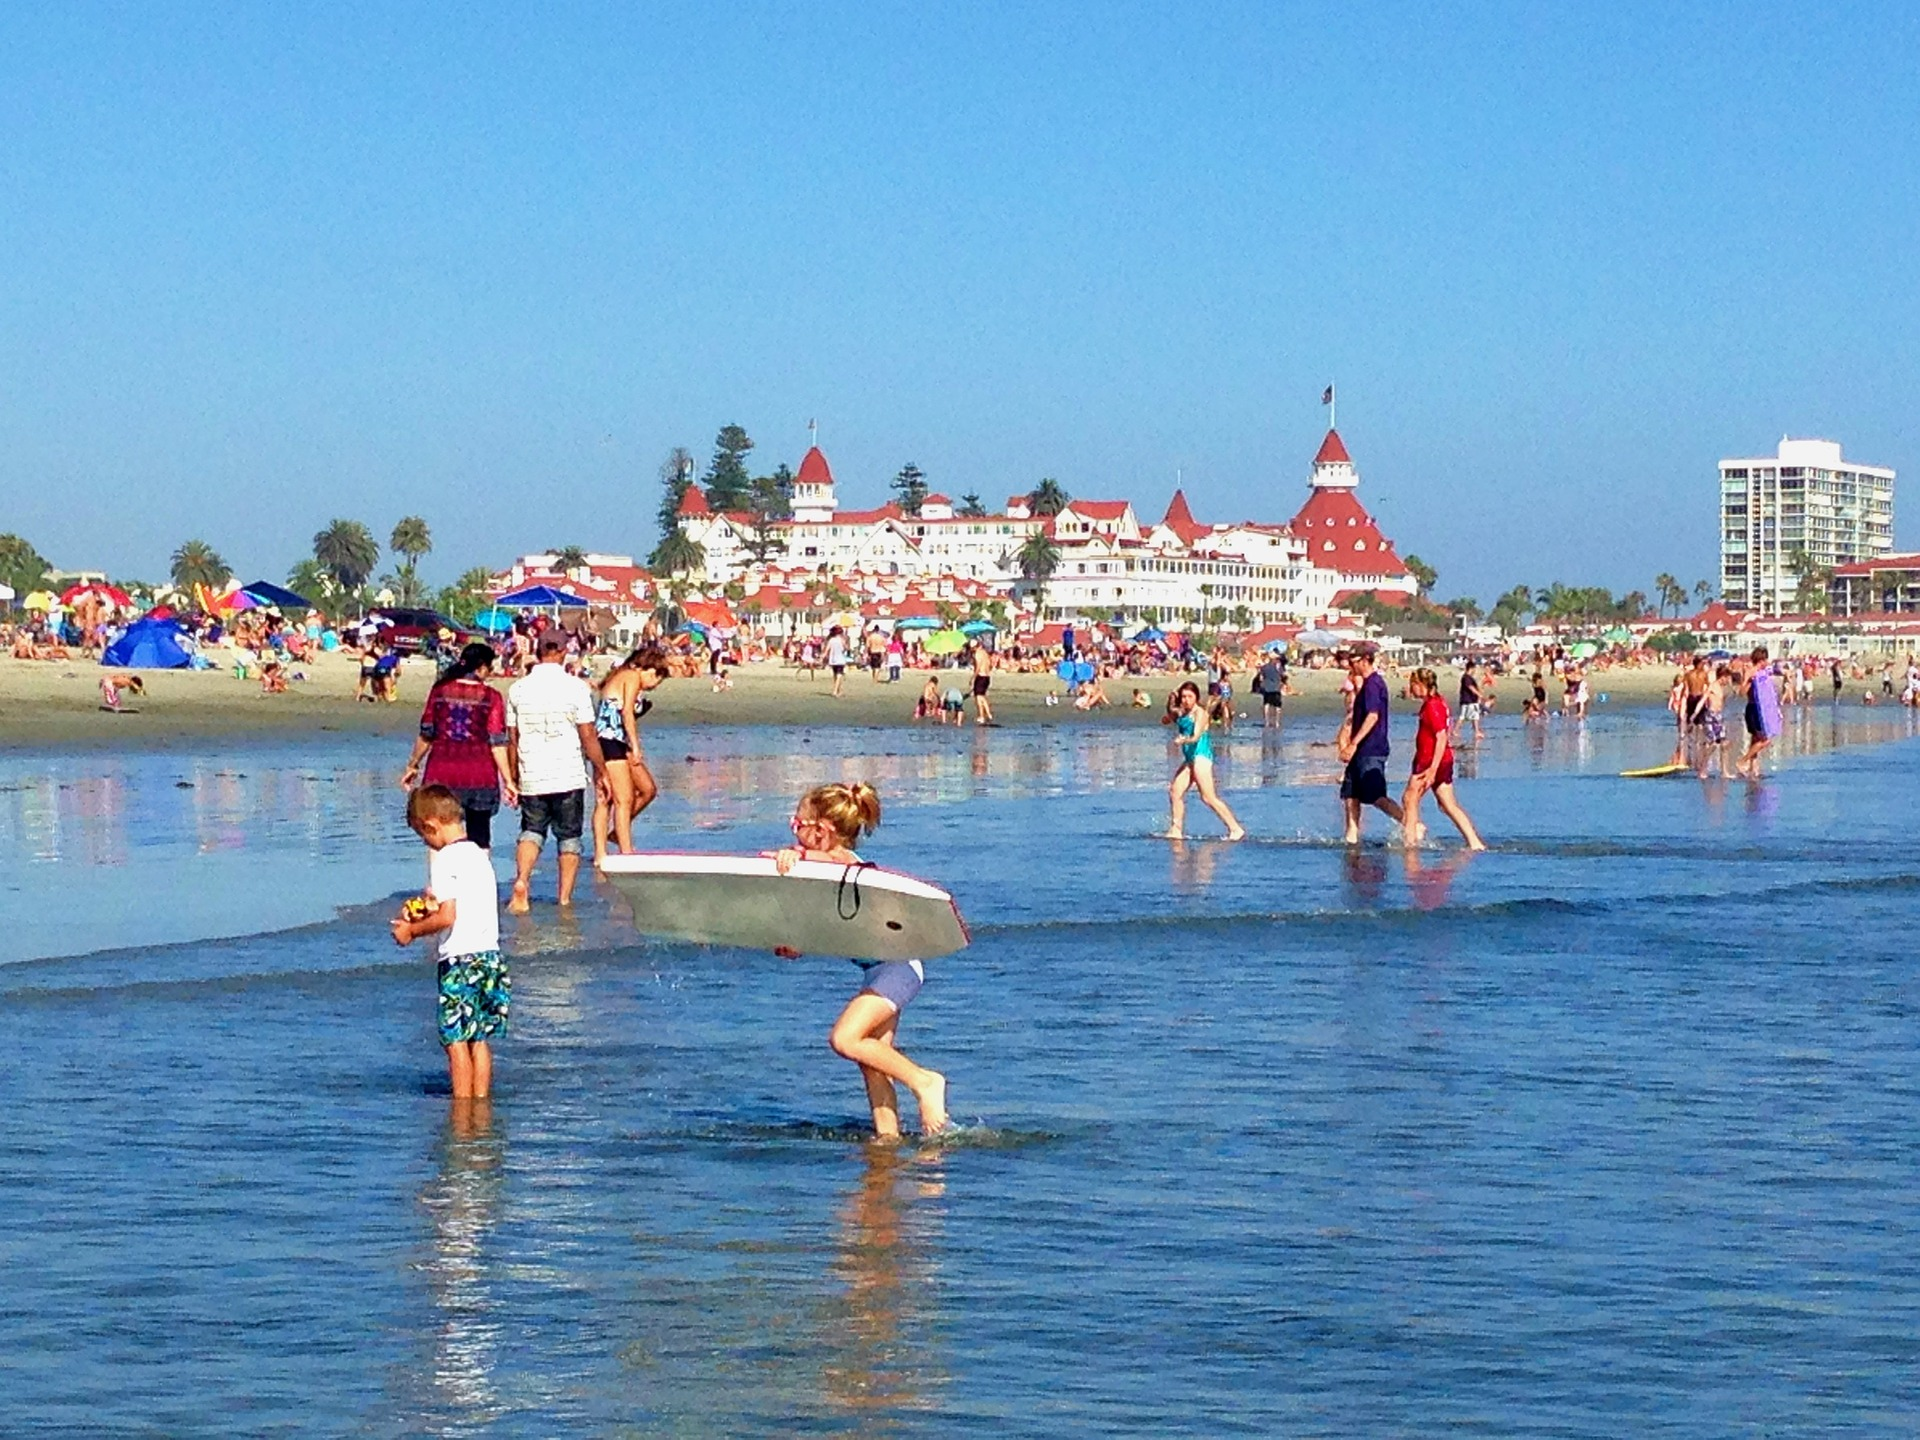 San Diego bucket list: Visit the Hotel Del Coronado